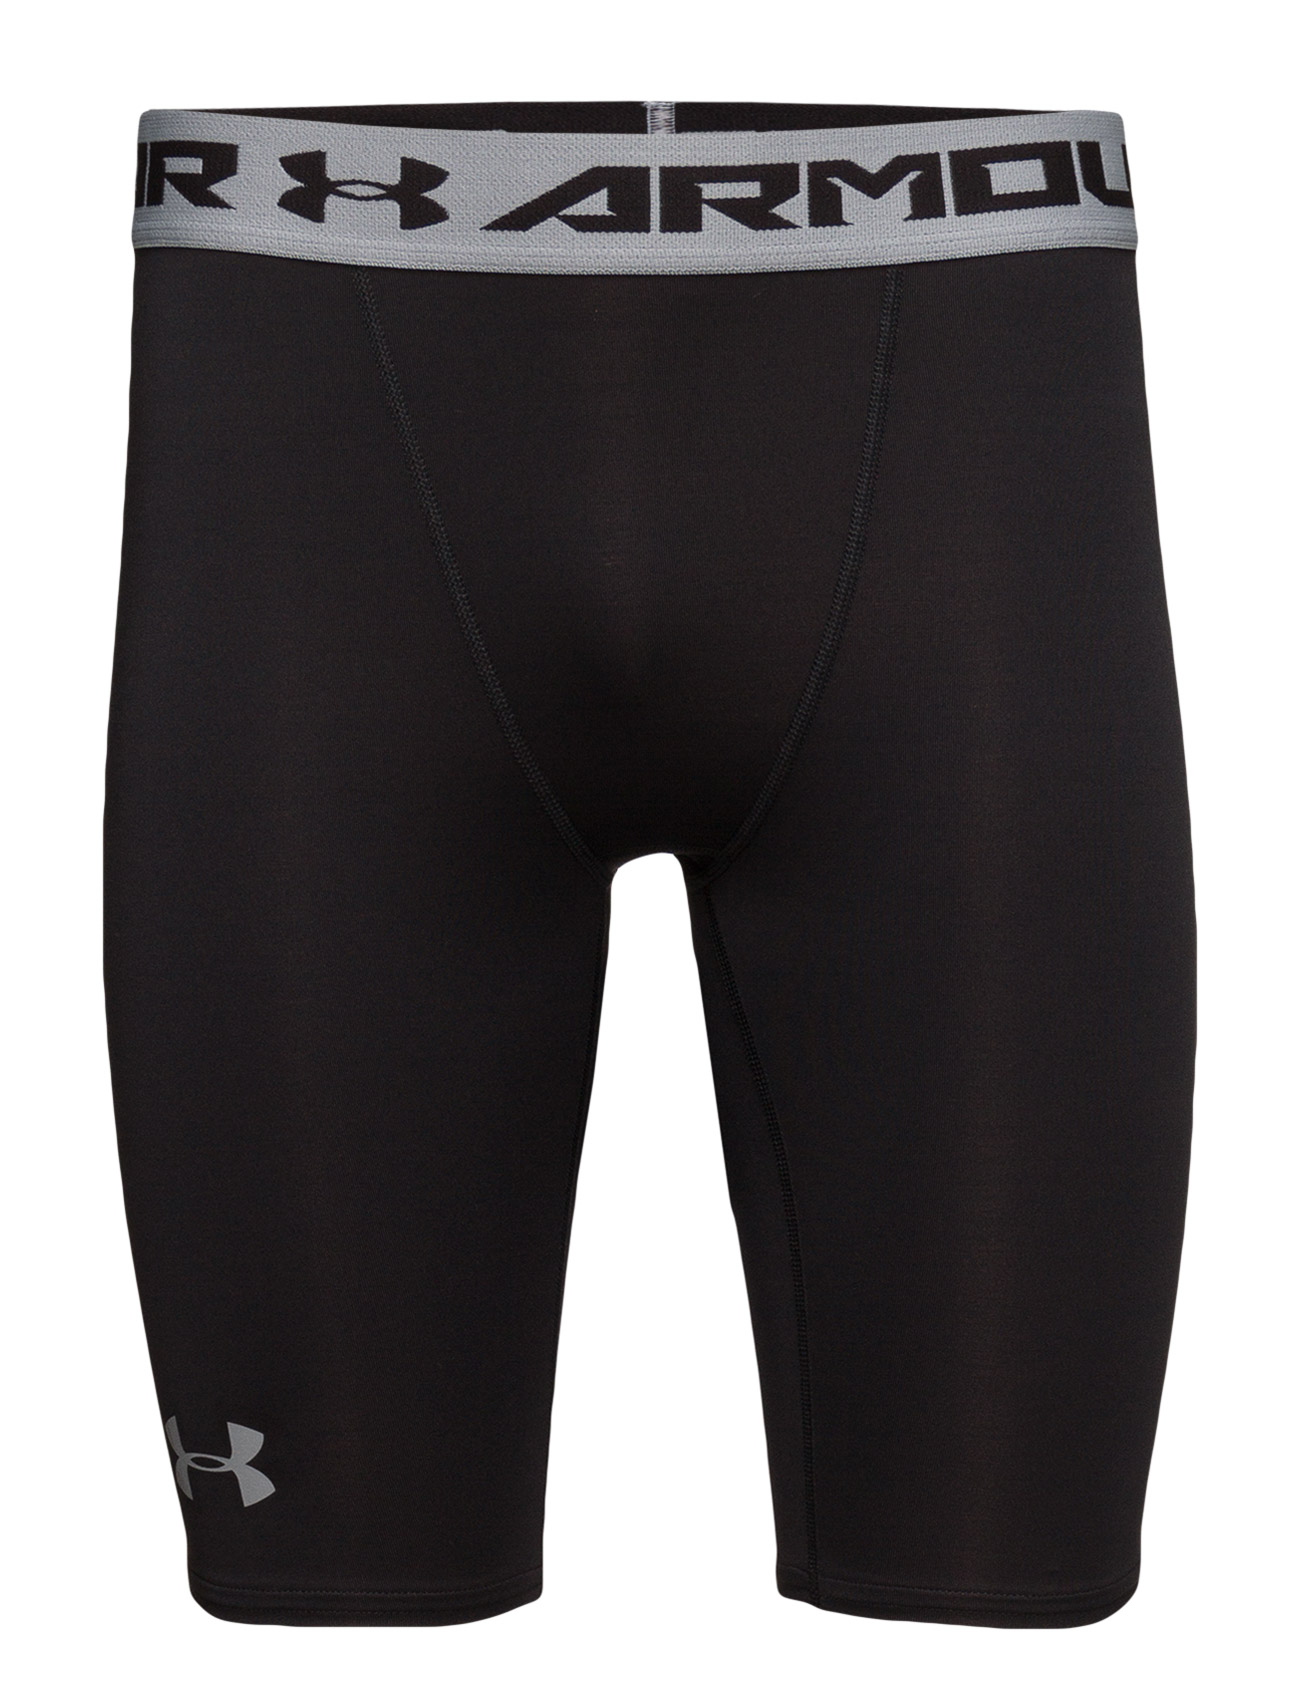 under armour – Armour hg long comp short på boozt.com dk